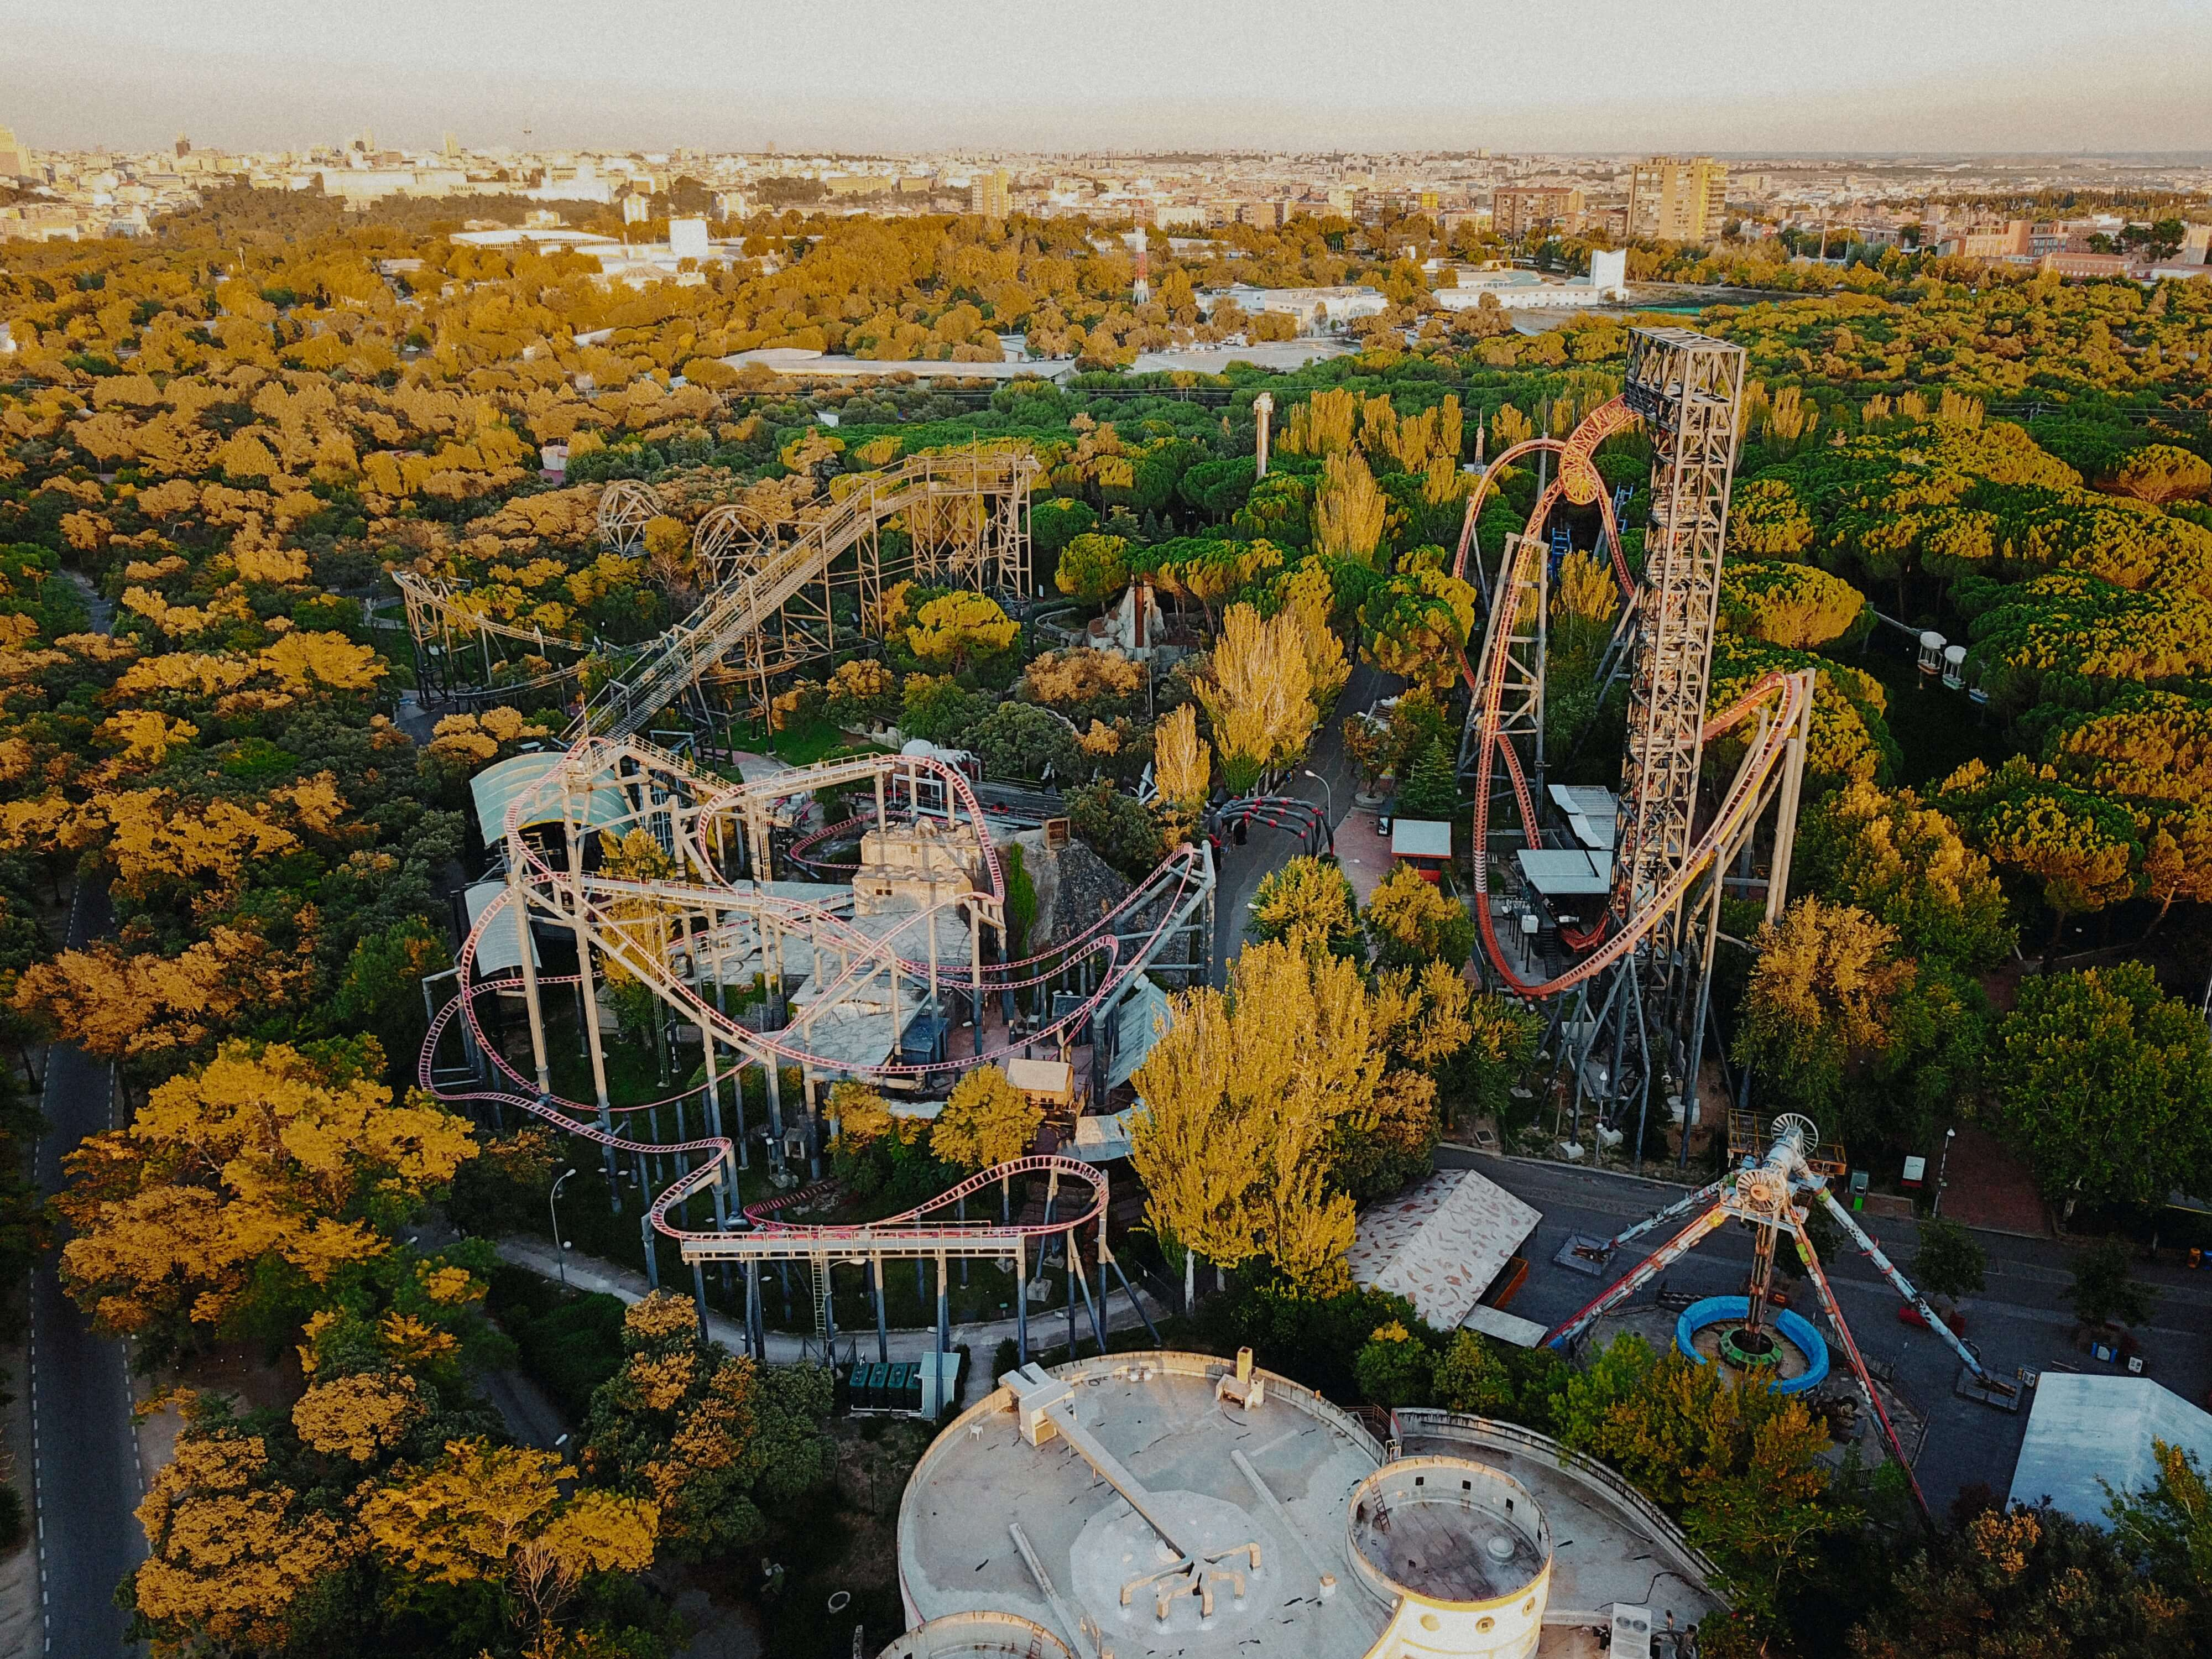 Parque Warner amusement park is one of the best places to visit in spain with kids